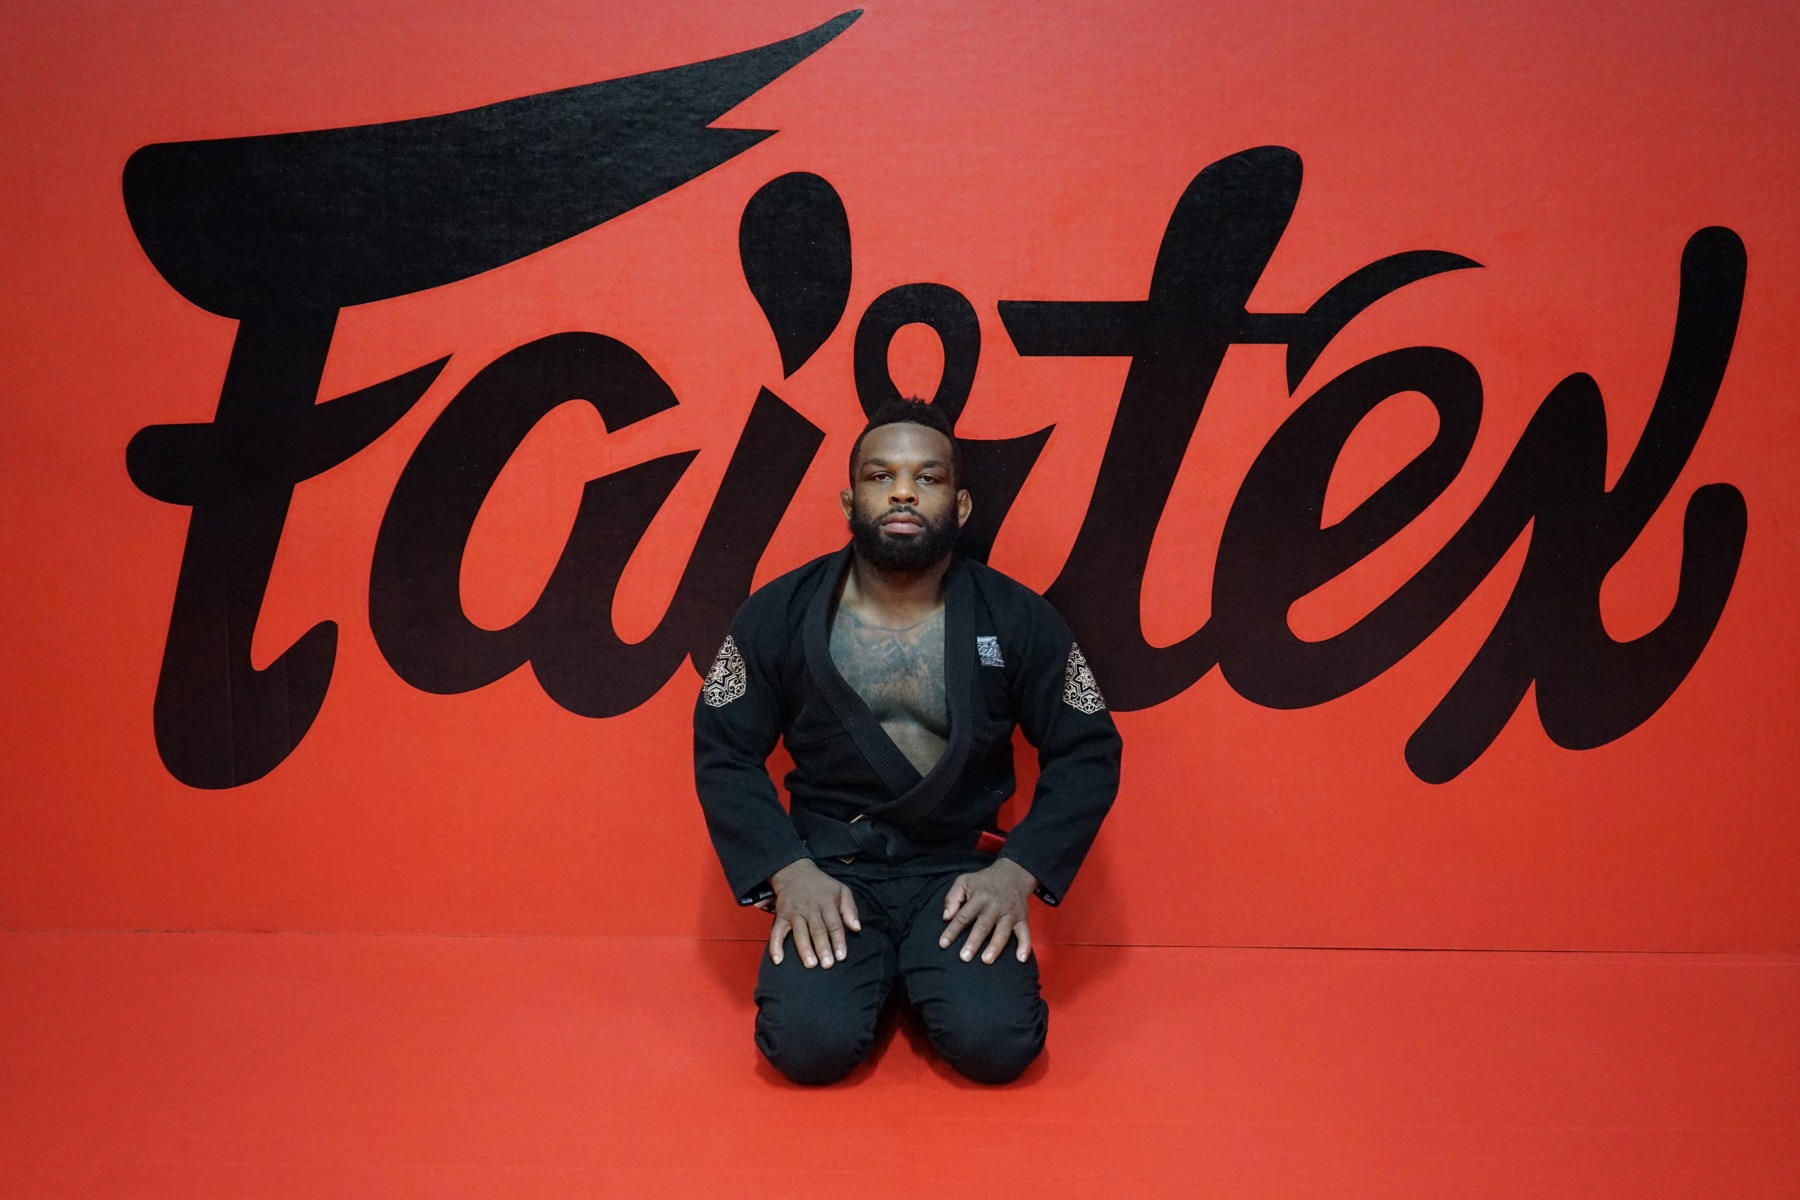 DJ Jackson teaching BJJ at Fairtex Training Center